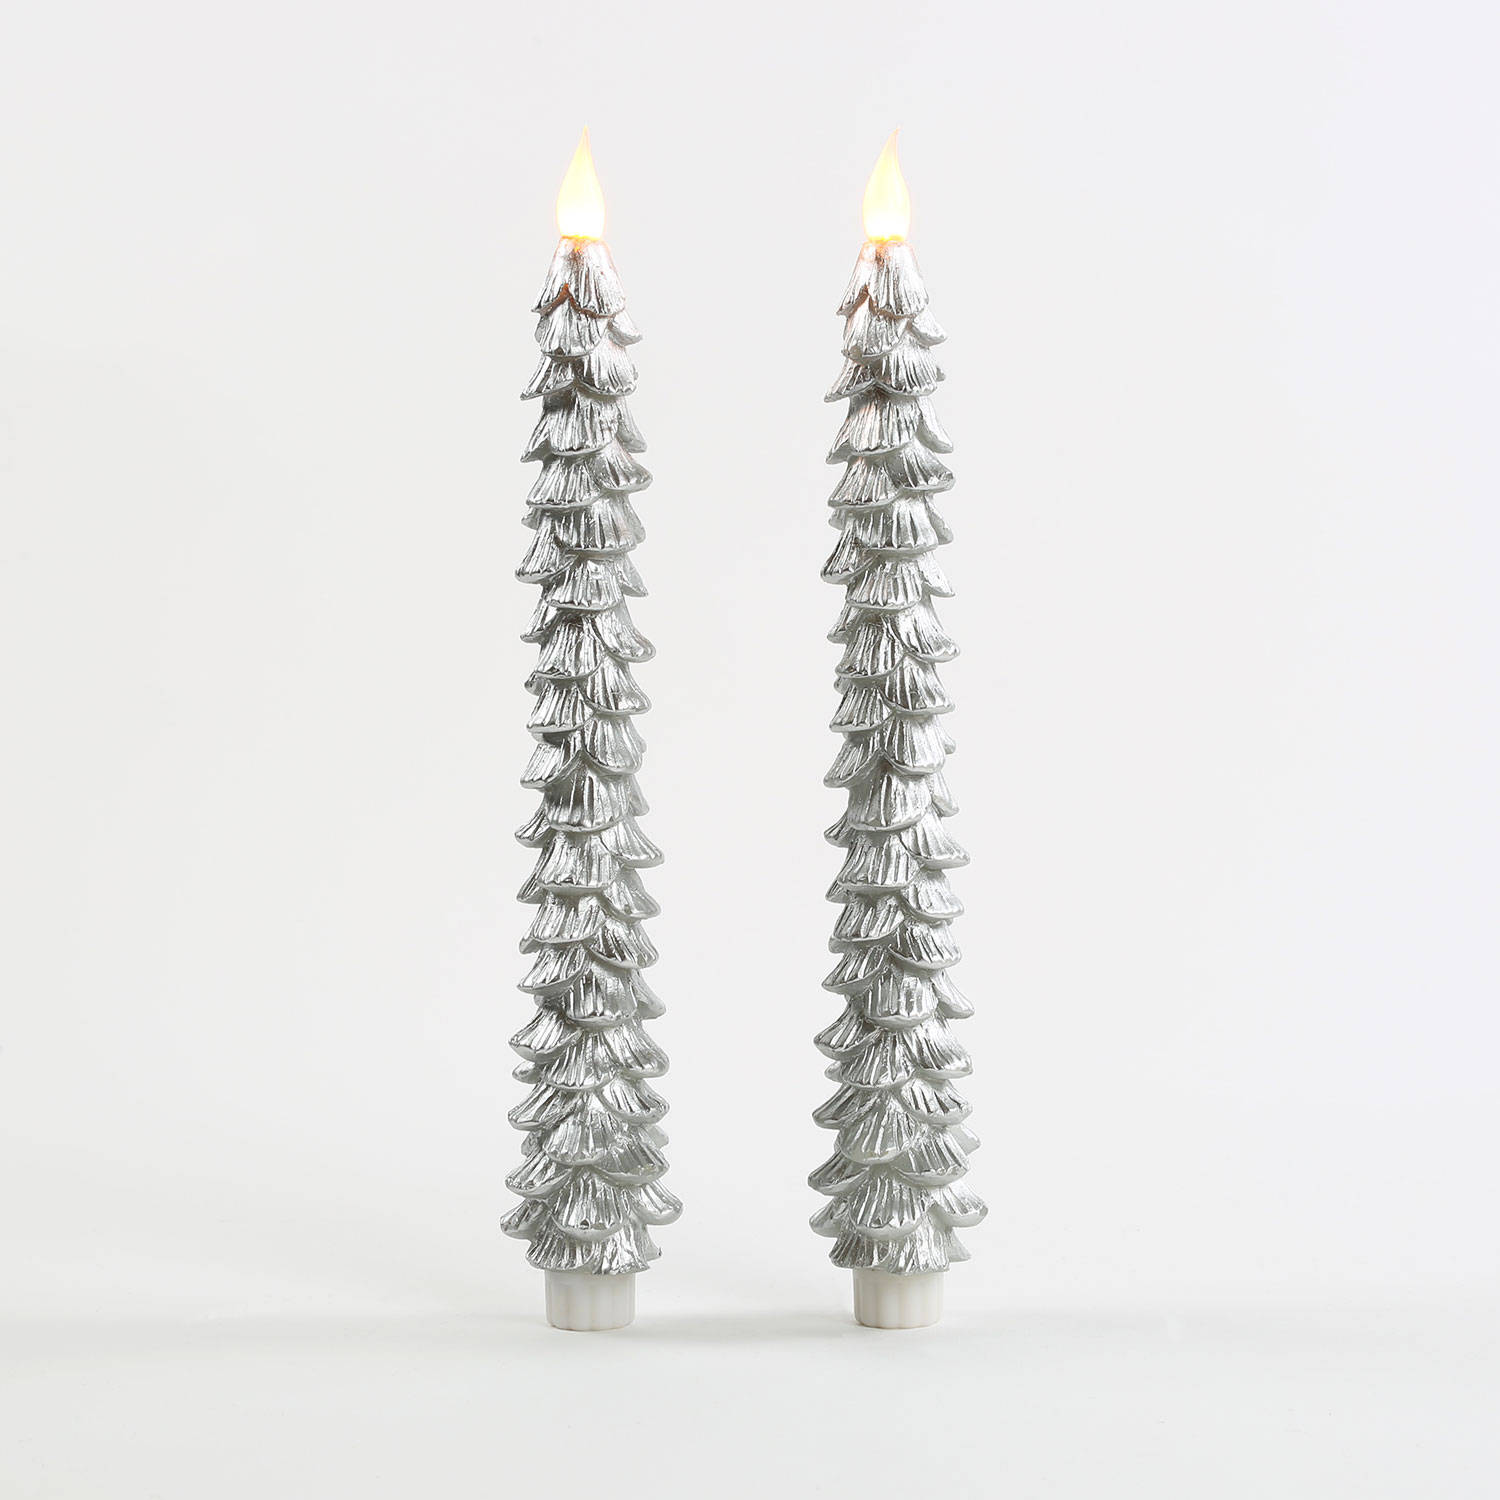 String Of Candle Lights For Christmas Tree : Lights.com Flameless Candles Taper Candles Silver 11